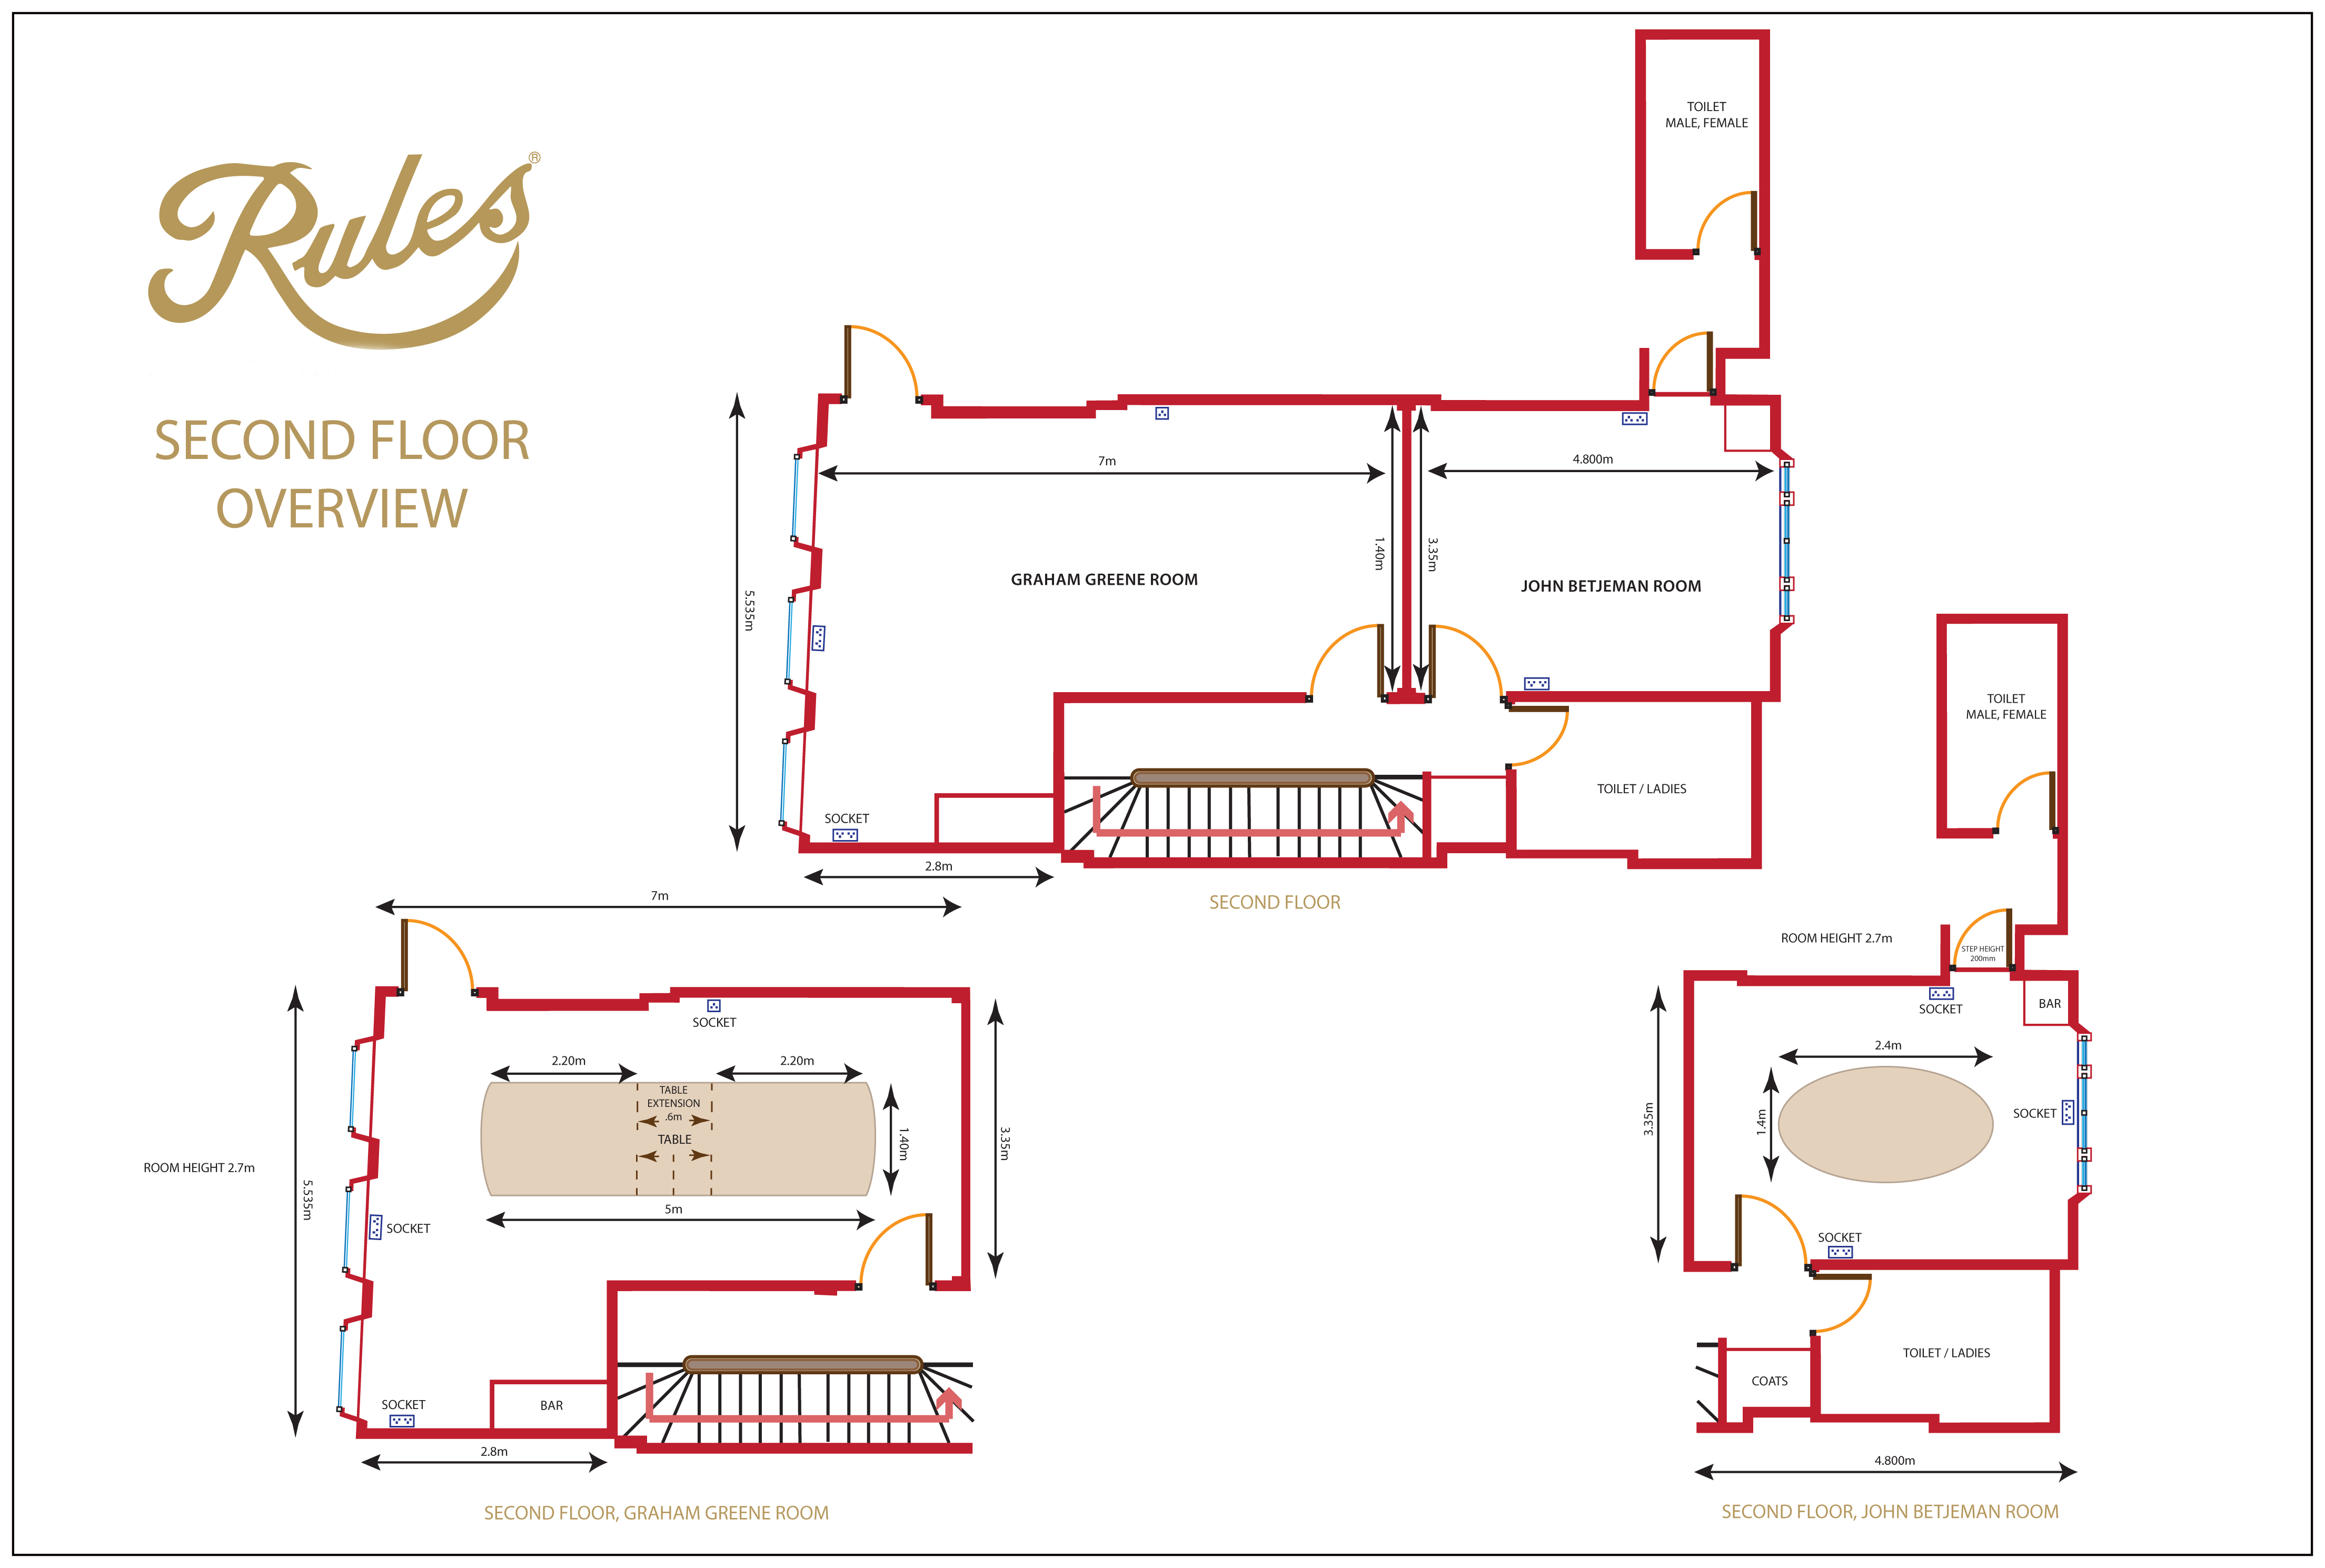 Floor Plans Private Rooms Rules Restaurant